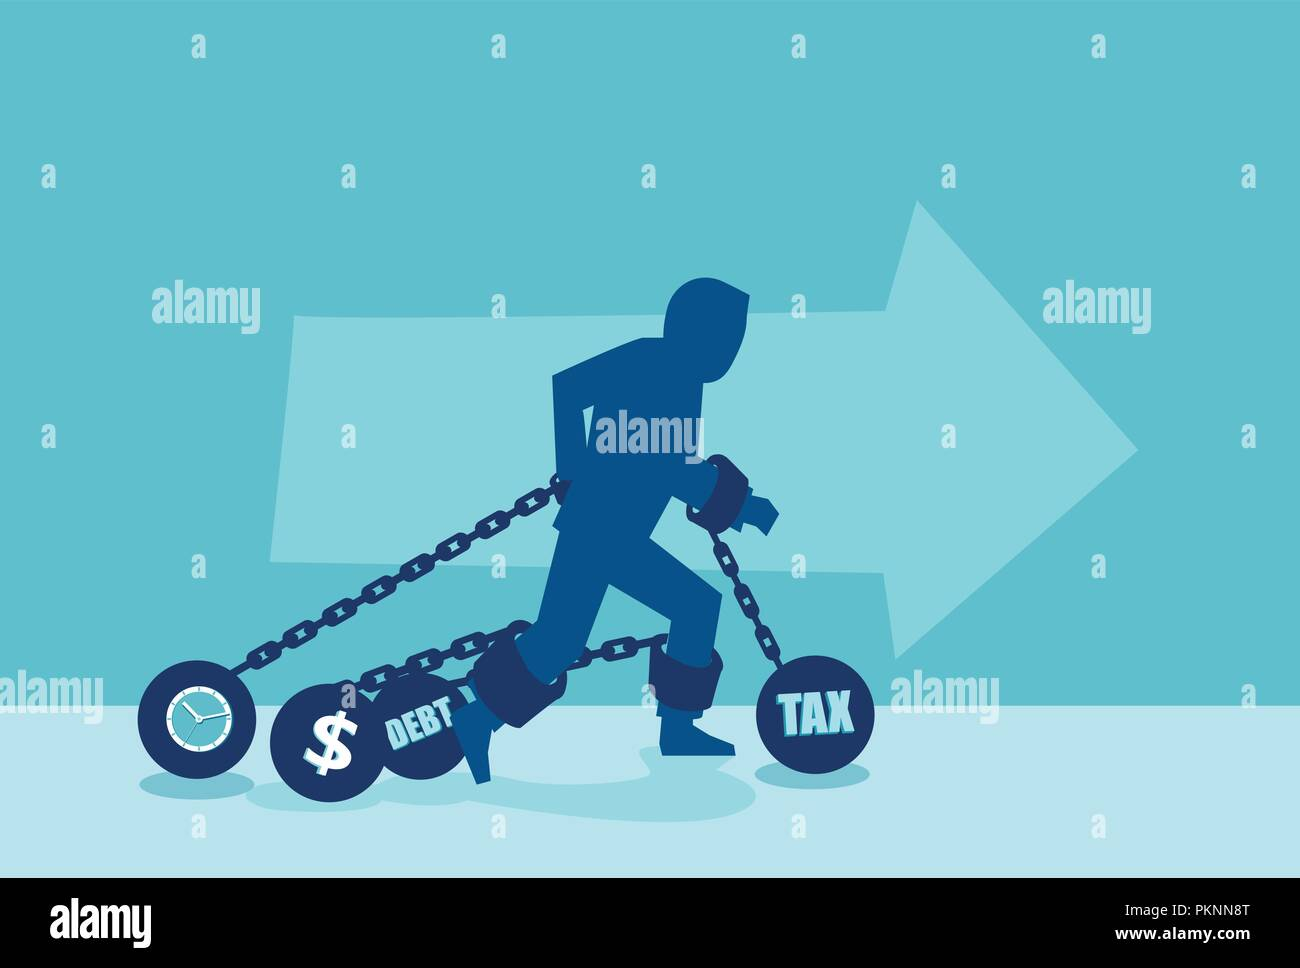 Concept vector of a man in chains of heavy debt financial obligations. - Stock Vector